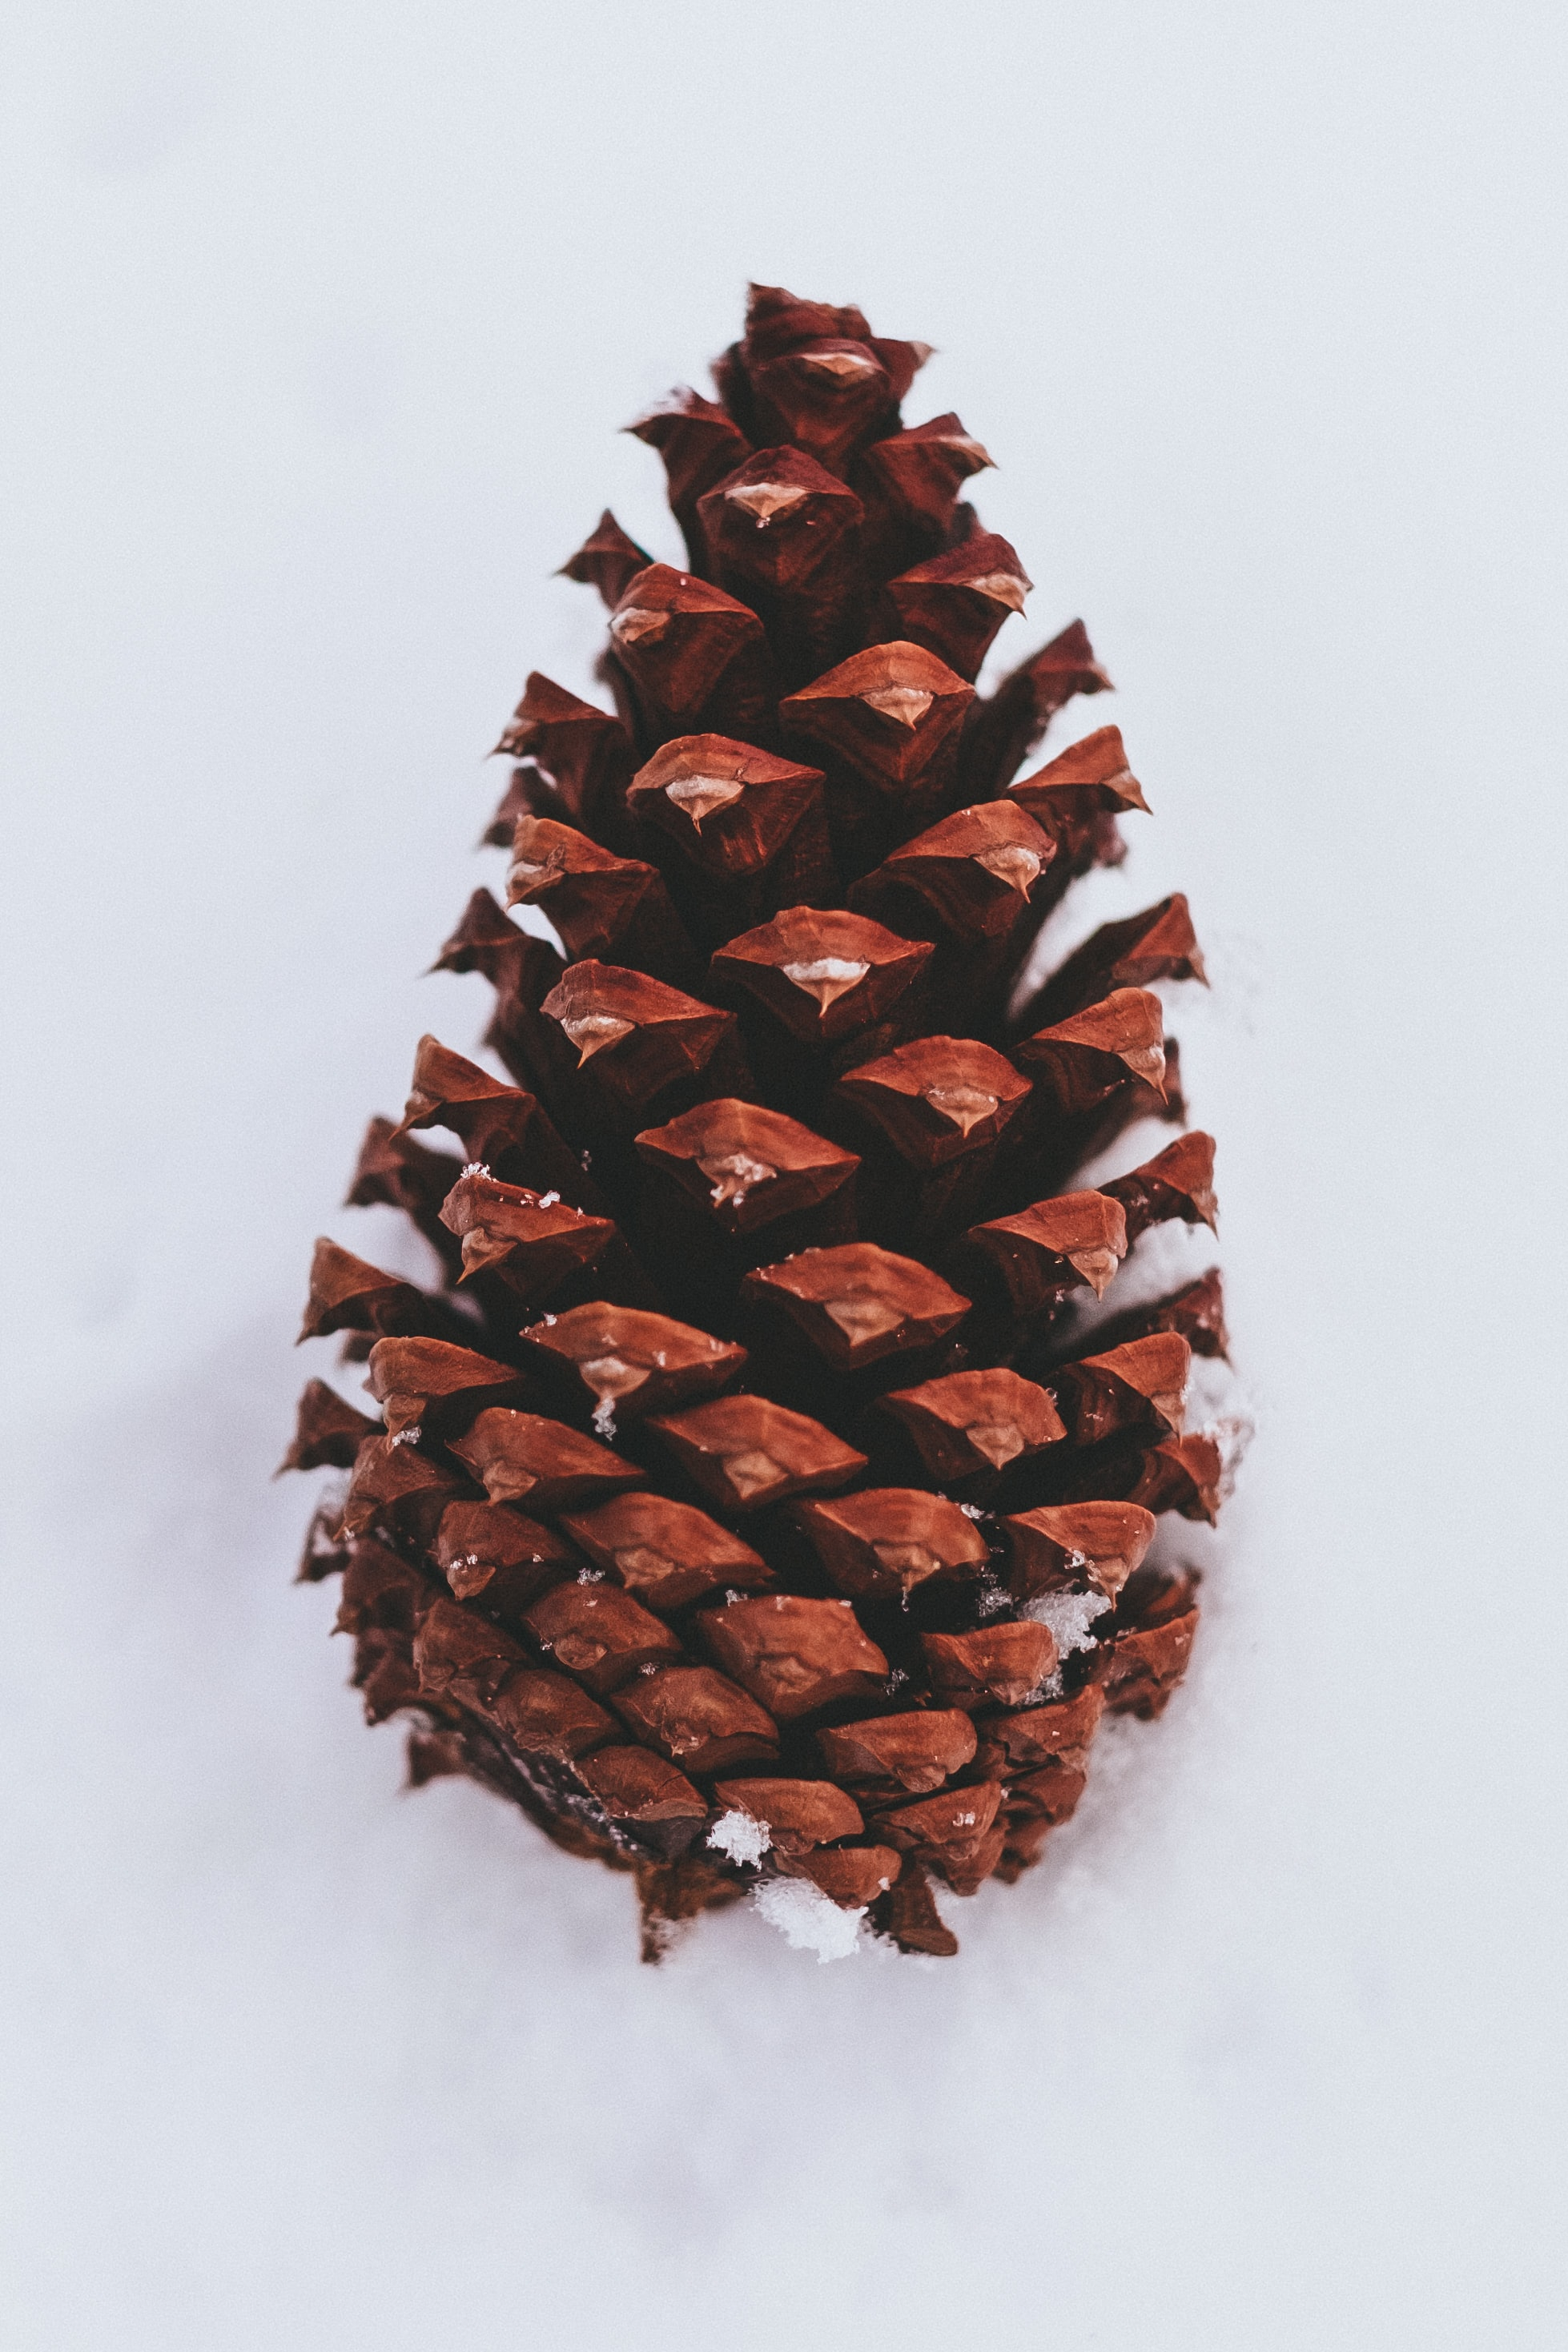 closeup photography of brown pine cone on snow